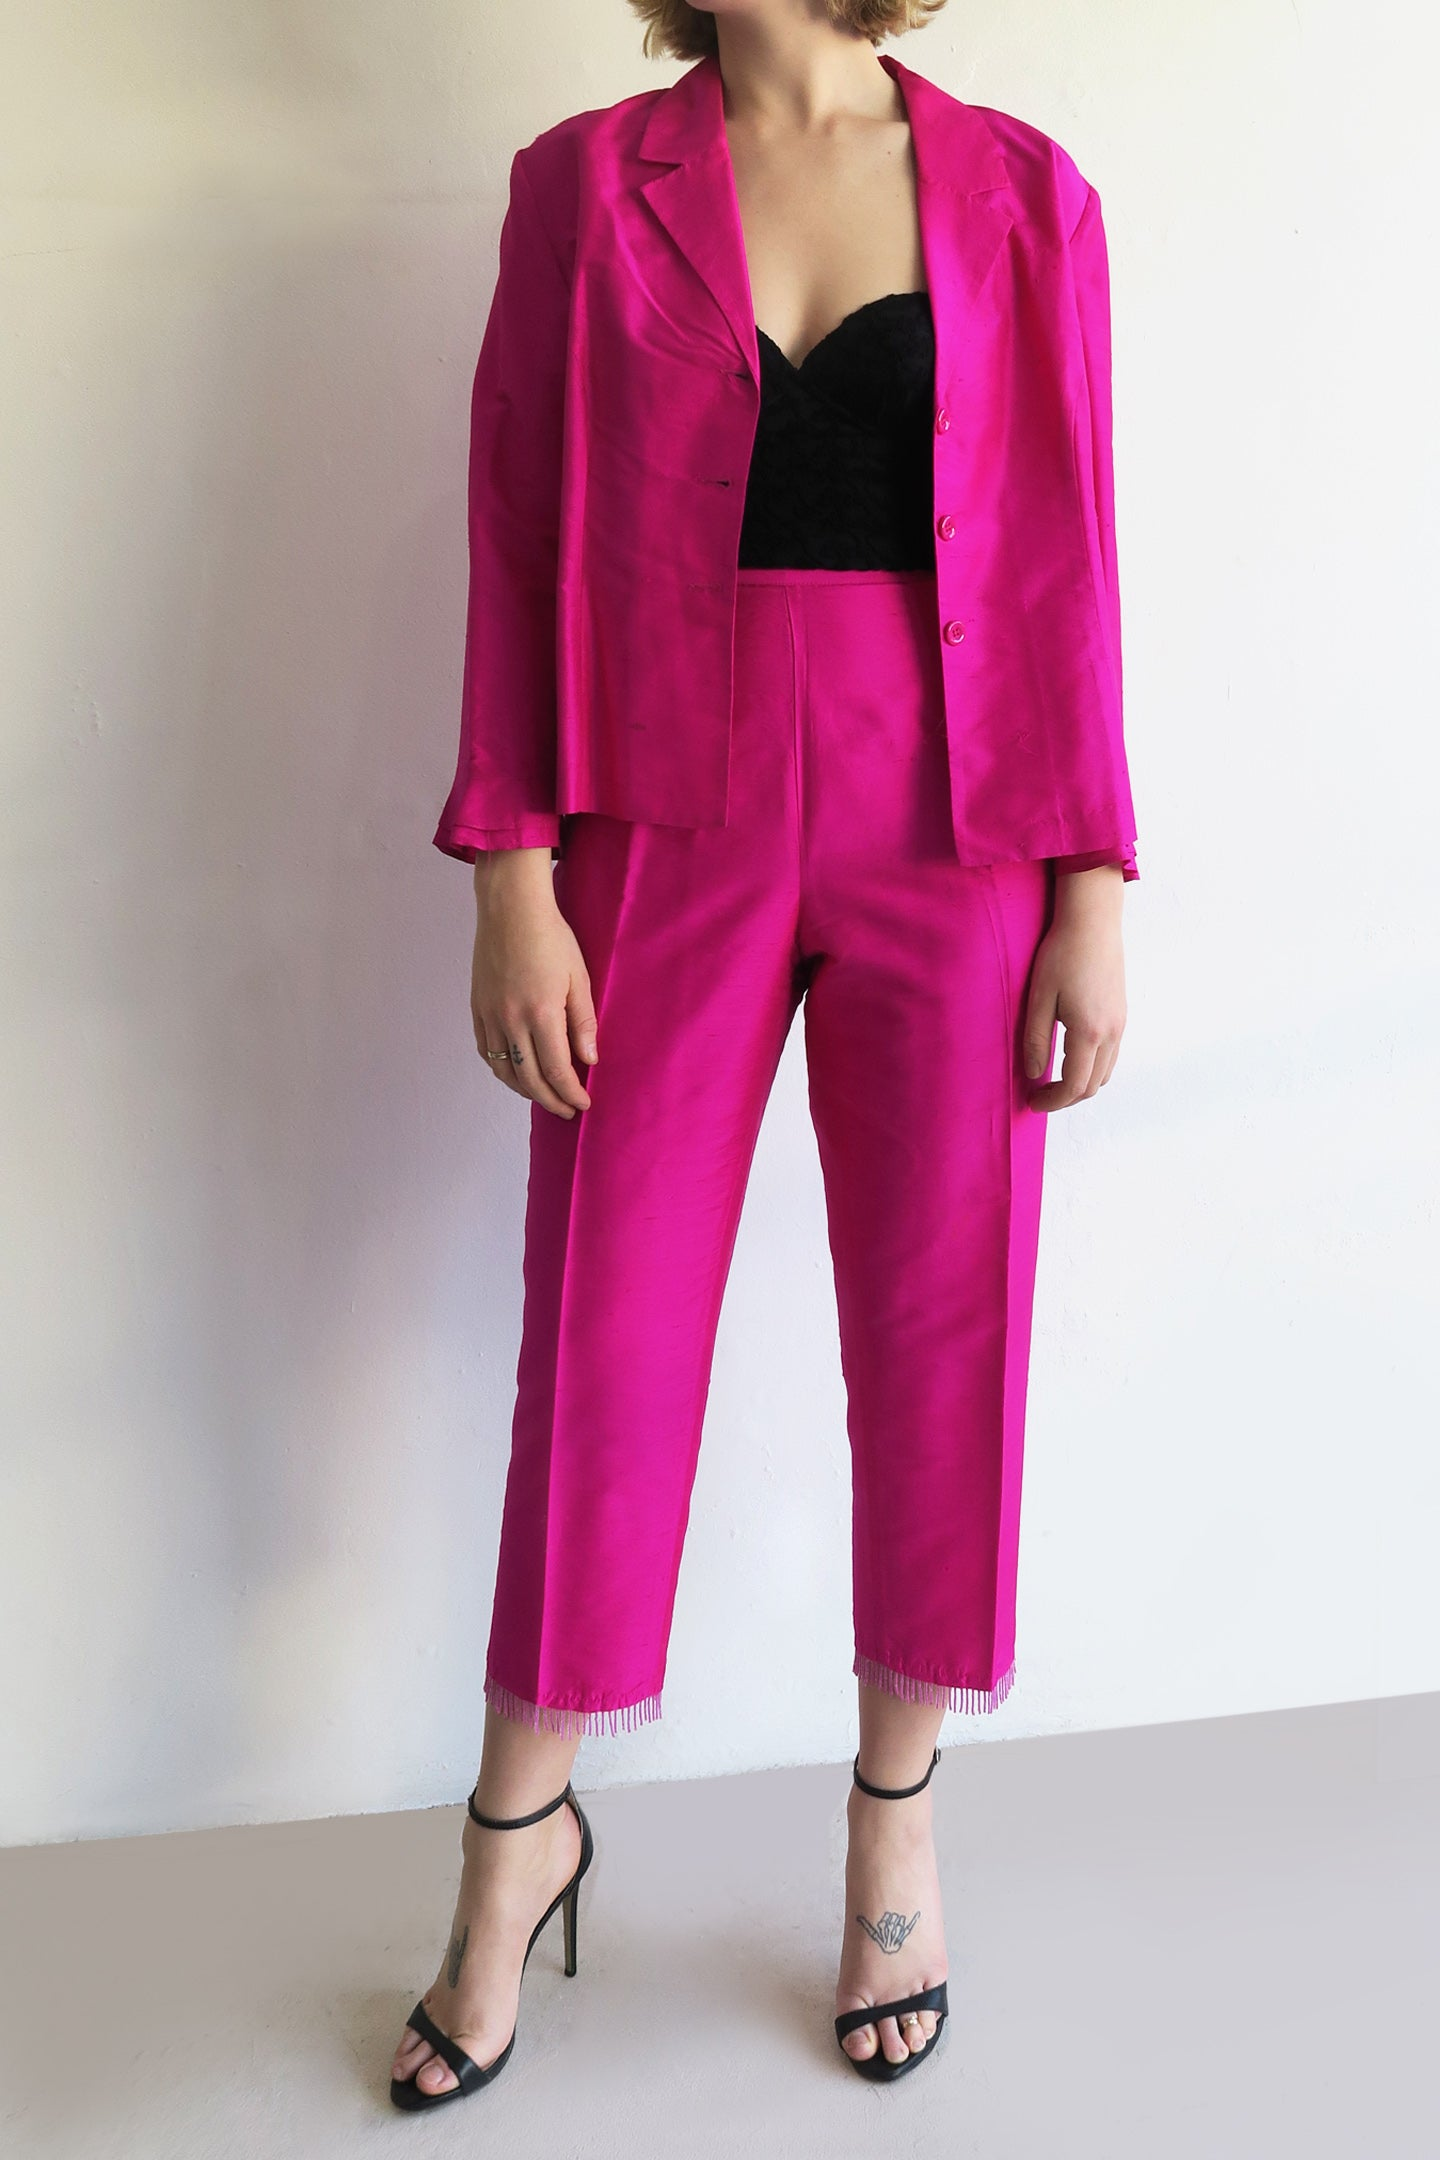 1990s Hot Pink Silk Two Piece